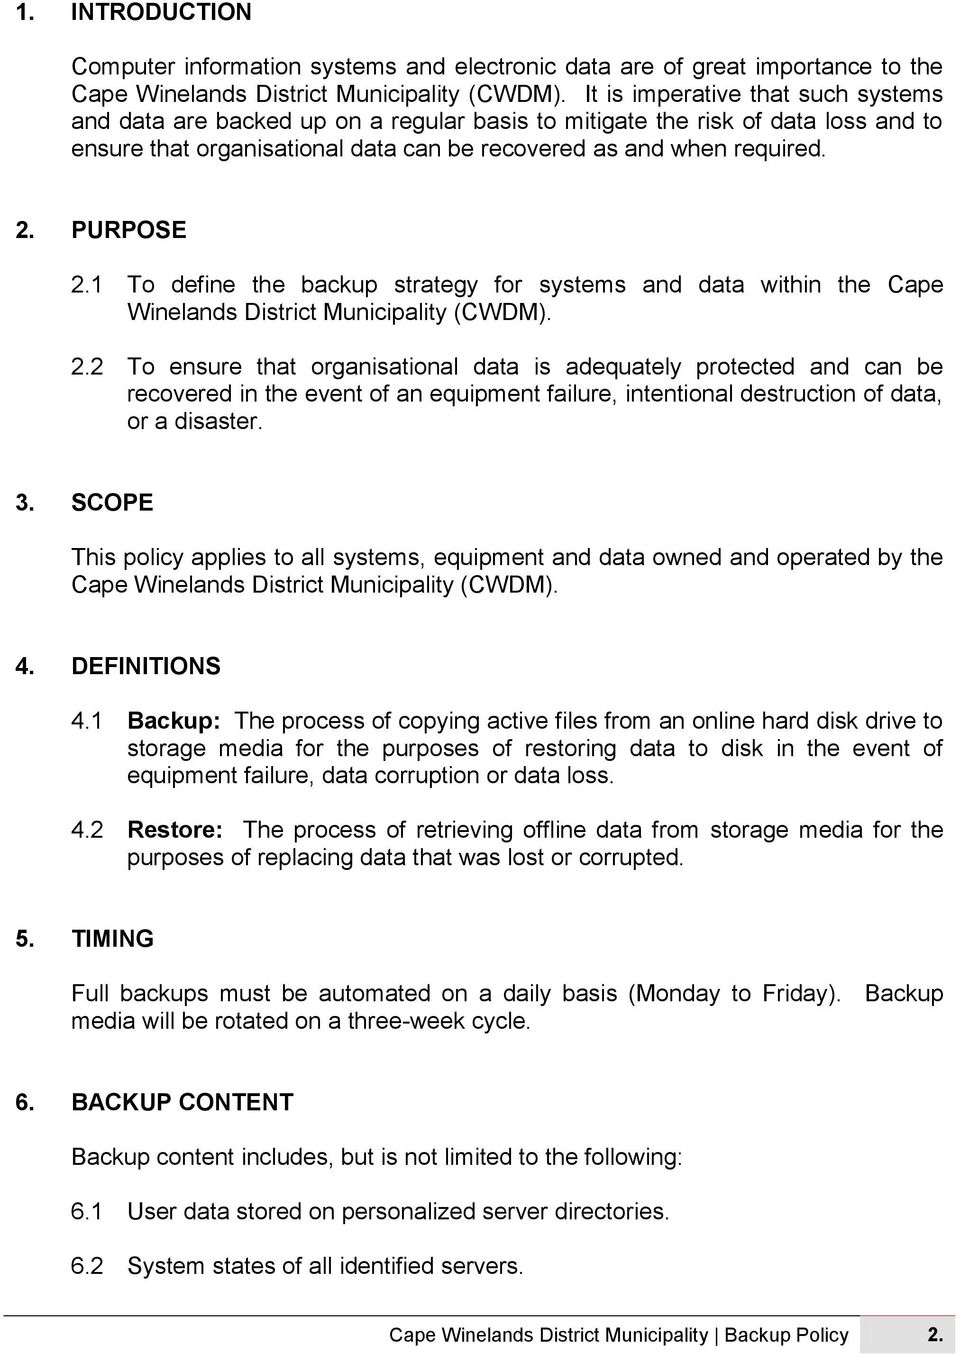 PURPOSE 2.1 To define the backup strategy for systems and data within the Cape Winelands District Municipality (CWDM). 2.2 To ensure that organisational data is adequately protected and can be recovered in the event of an equipment failure, intentional destruction of data, or a disaster.